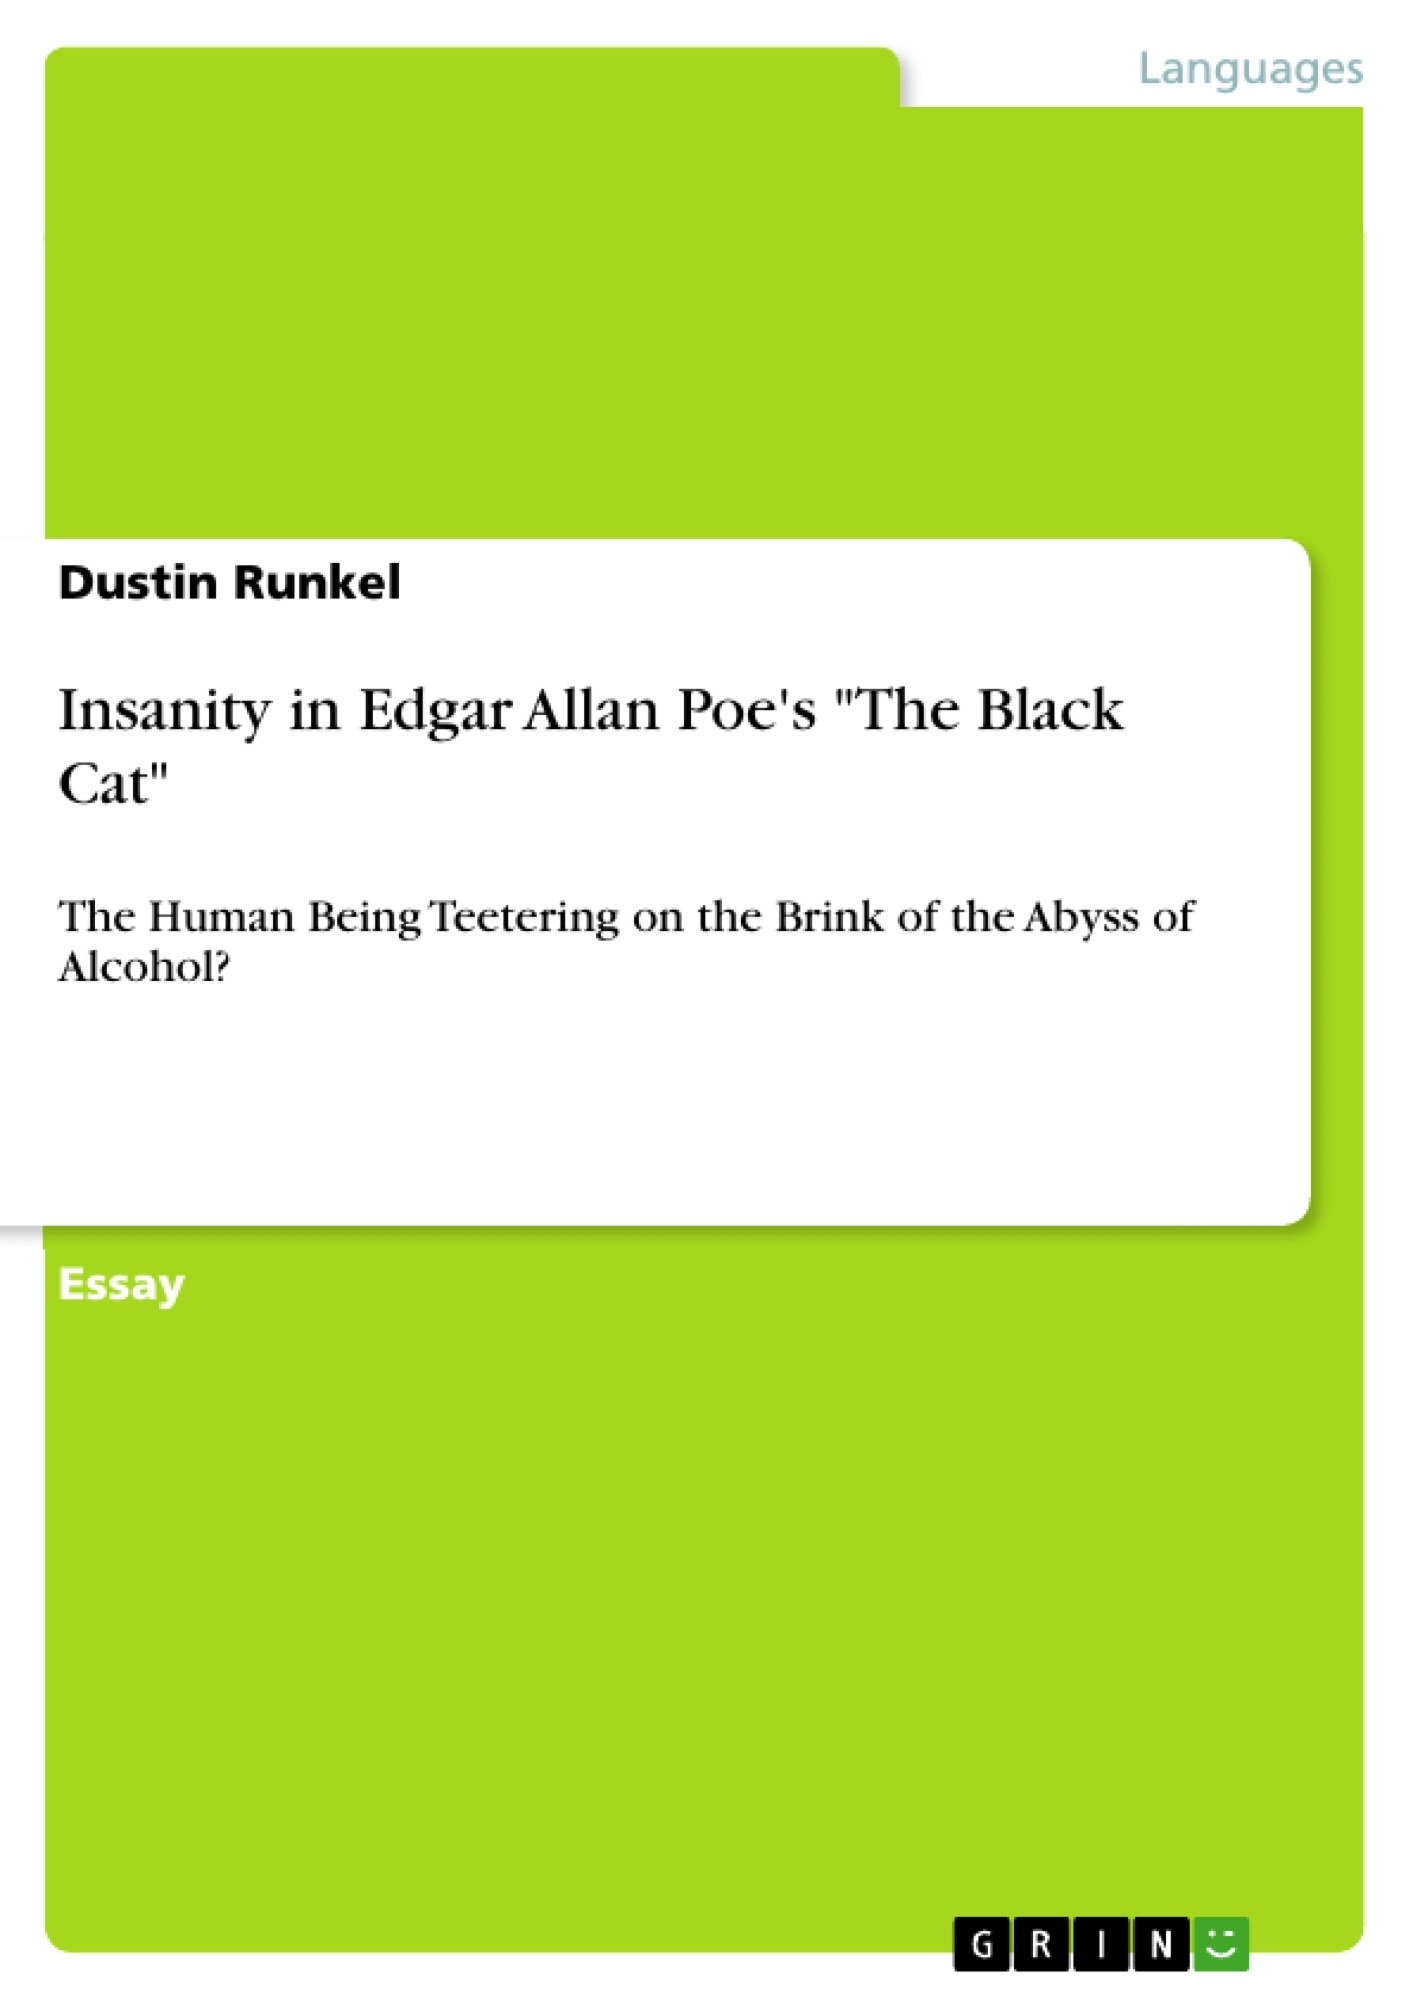 the black cat by edgar allan poe short story pdf